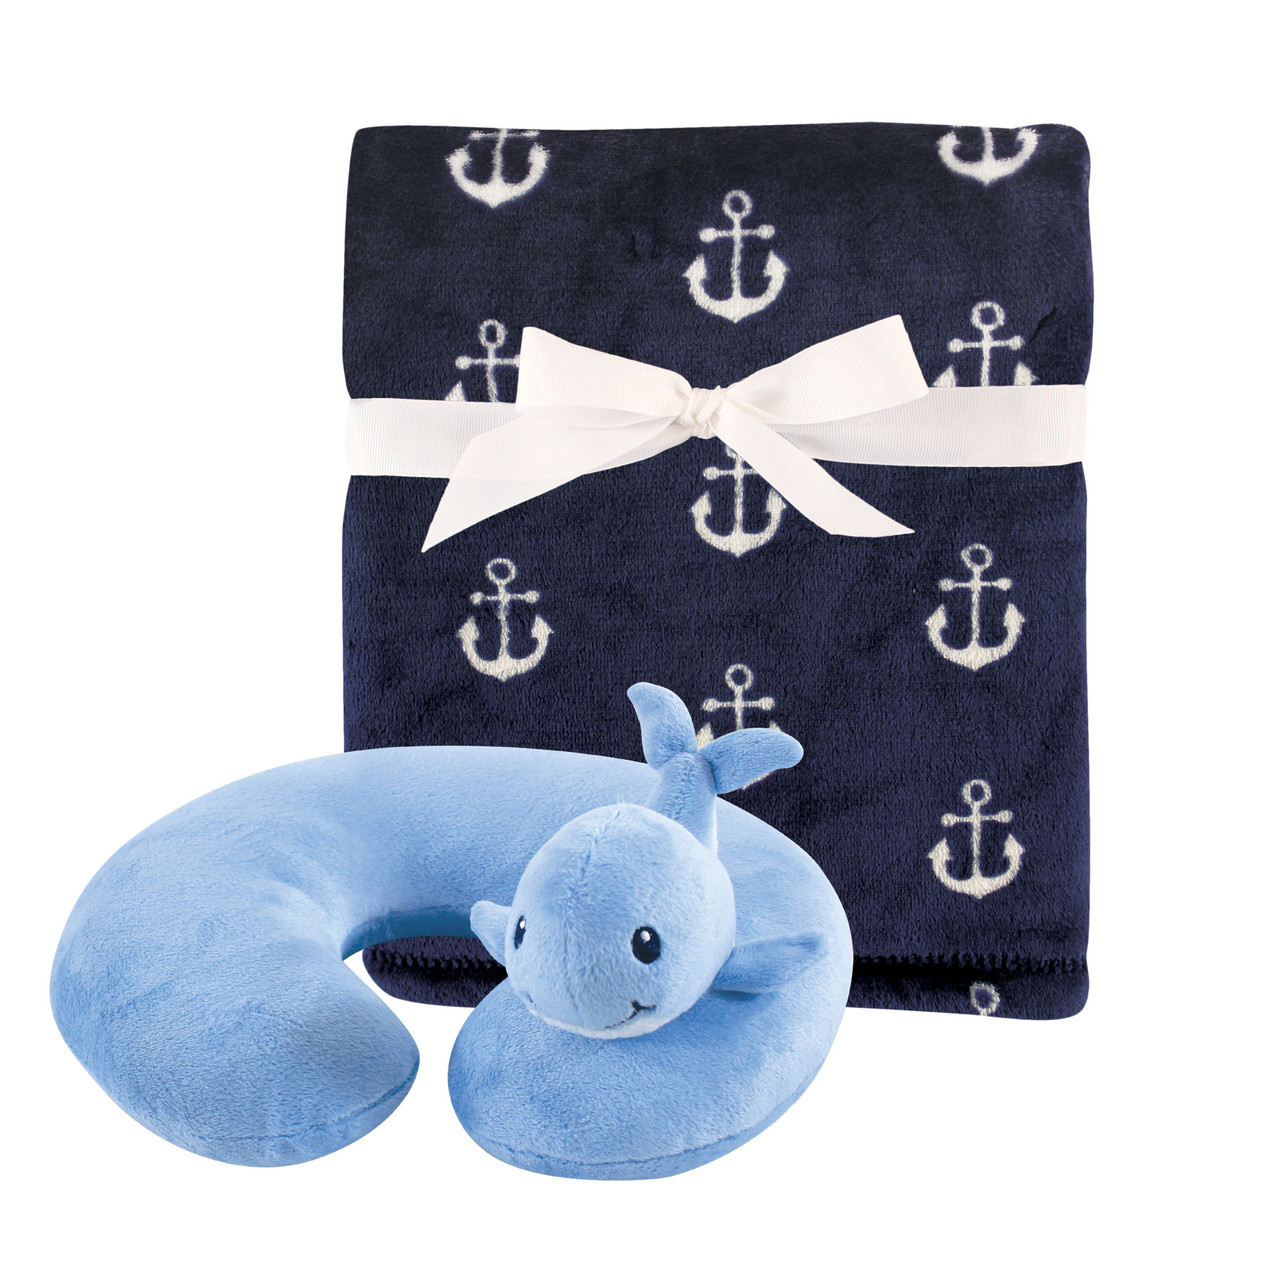 hudson baby travel neck support pillow and blanket set whale